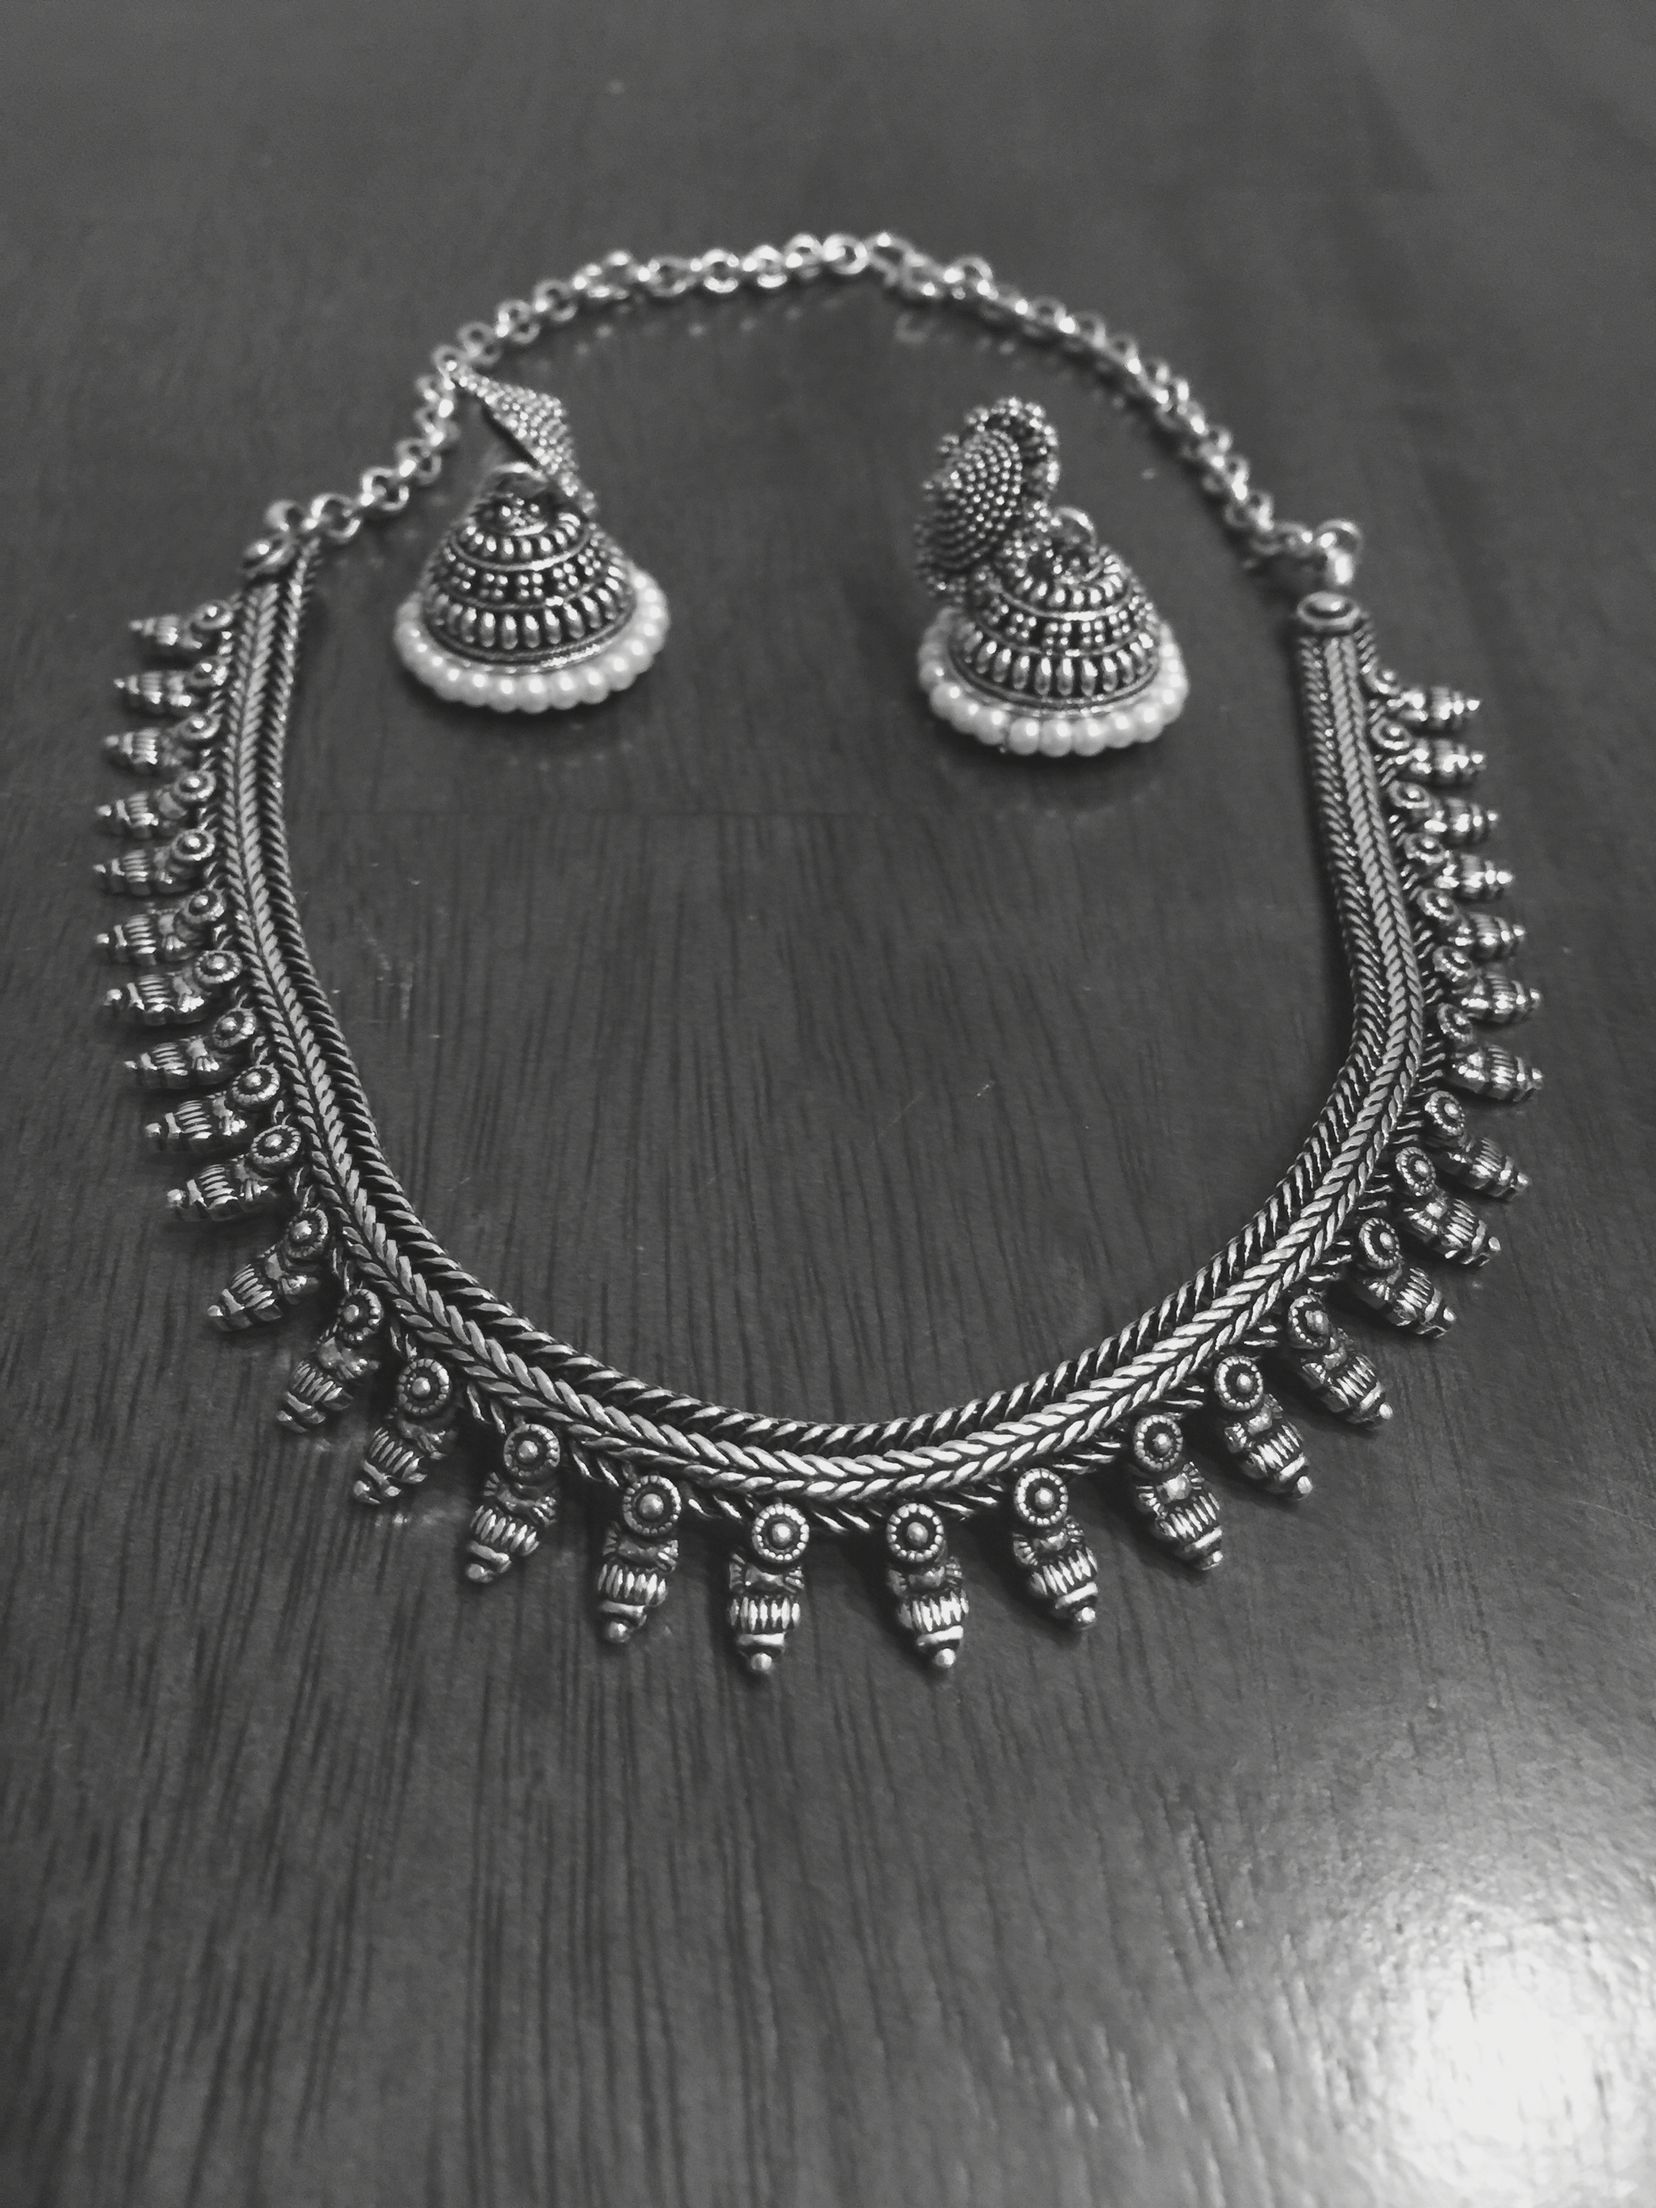 Silver Indian jewelry | Saree , blouses and jewelry | Pinterest ...